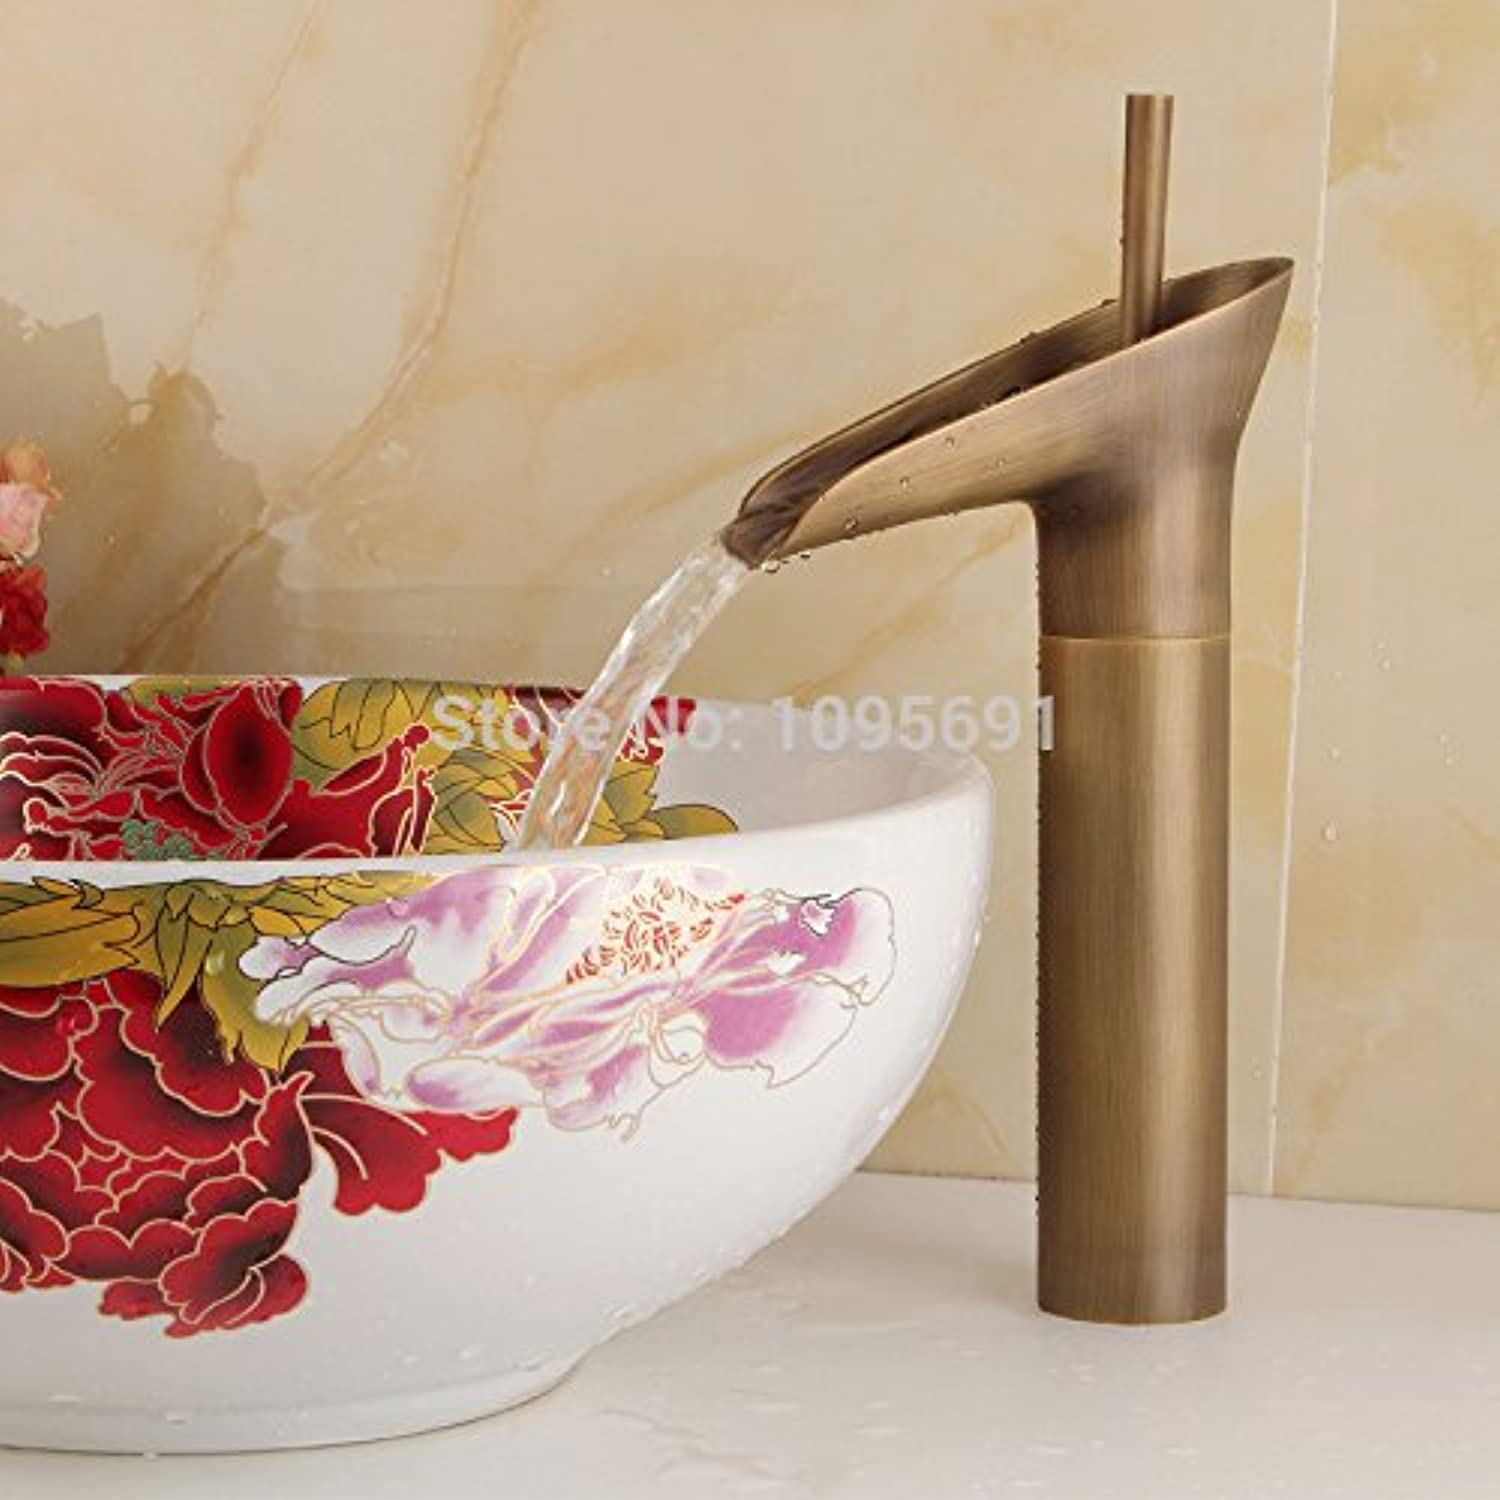 U-Enjoy New Style Antique Top Quality Copper Finish Waterfall Bathroom Home Bathroom Kitchen Sink Faucet Brass Faucet (Free Shipping)